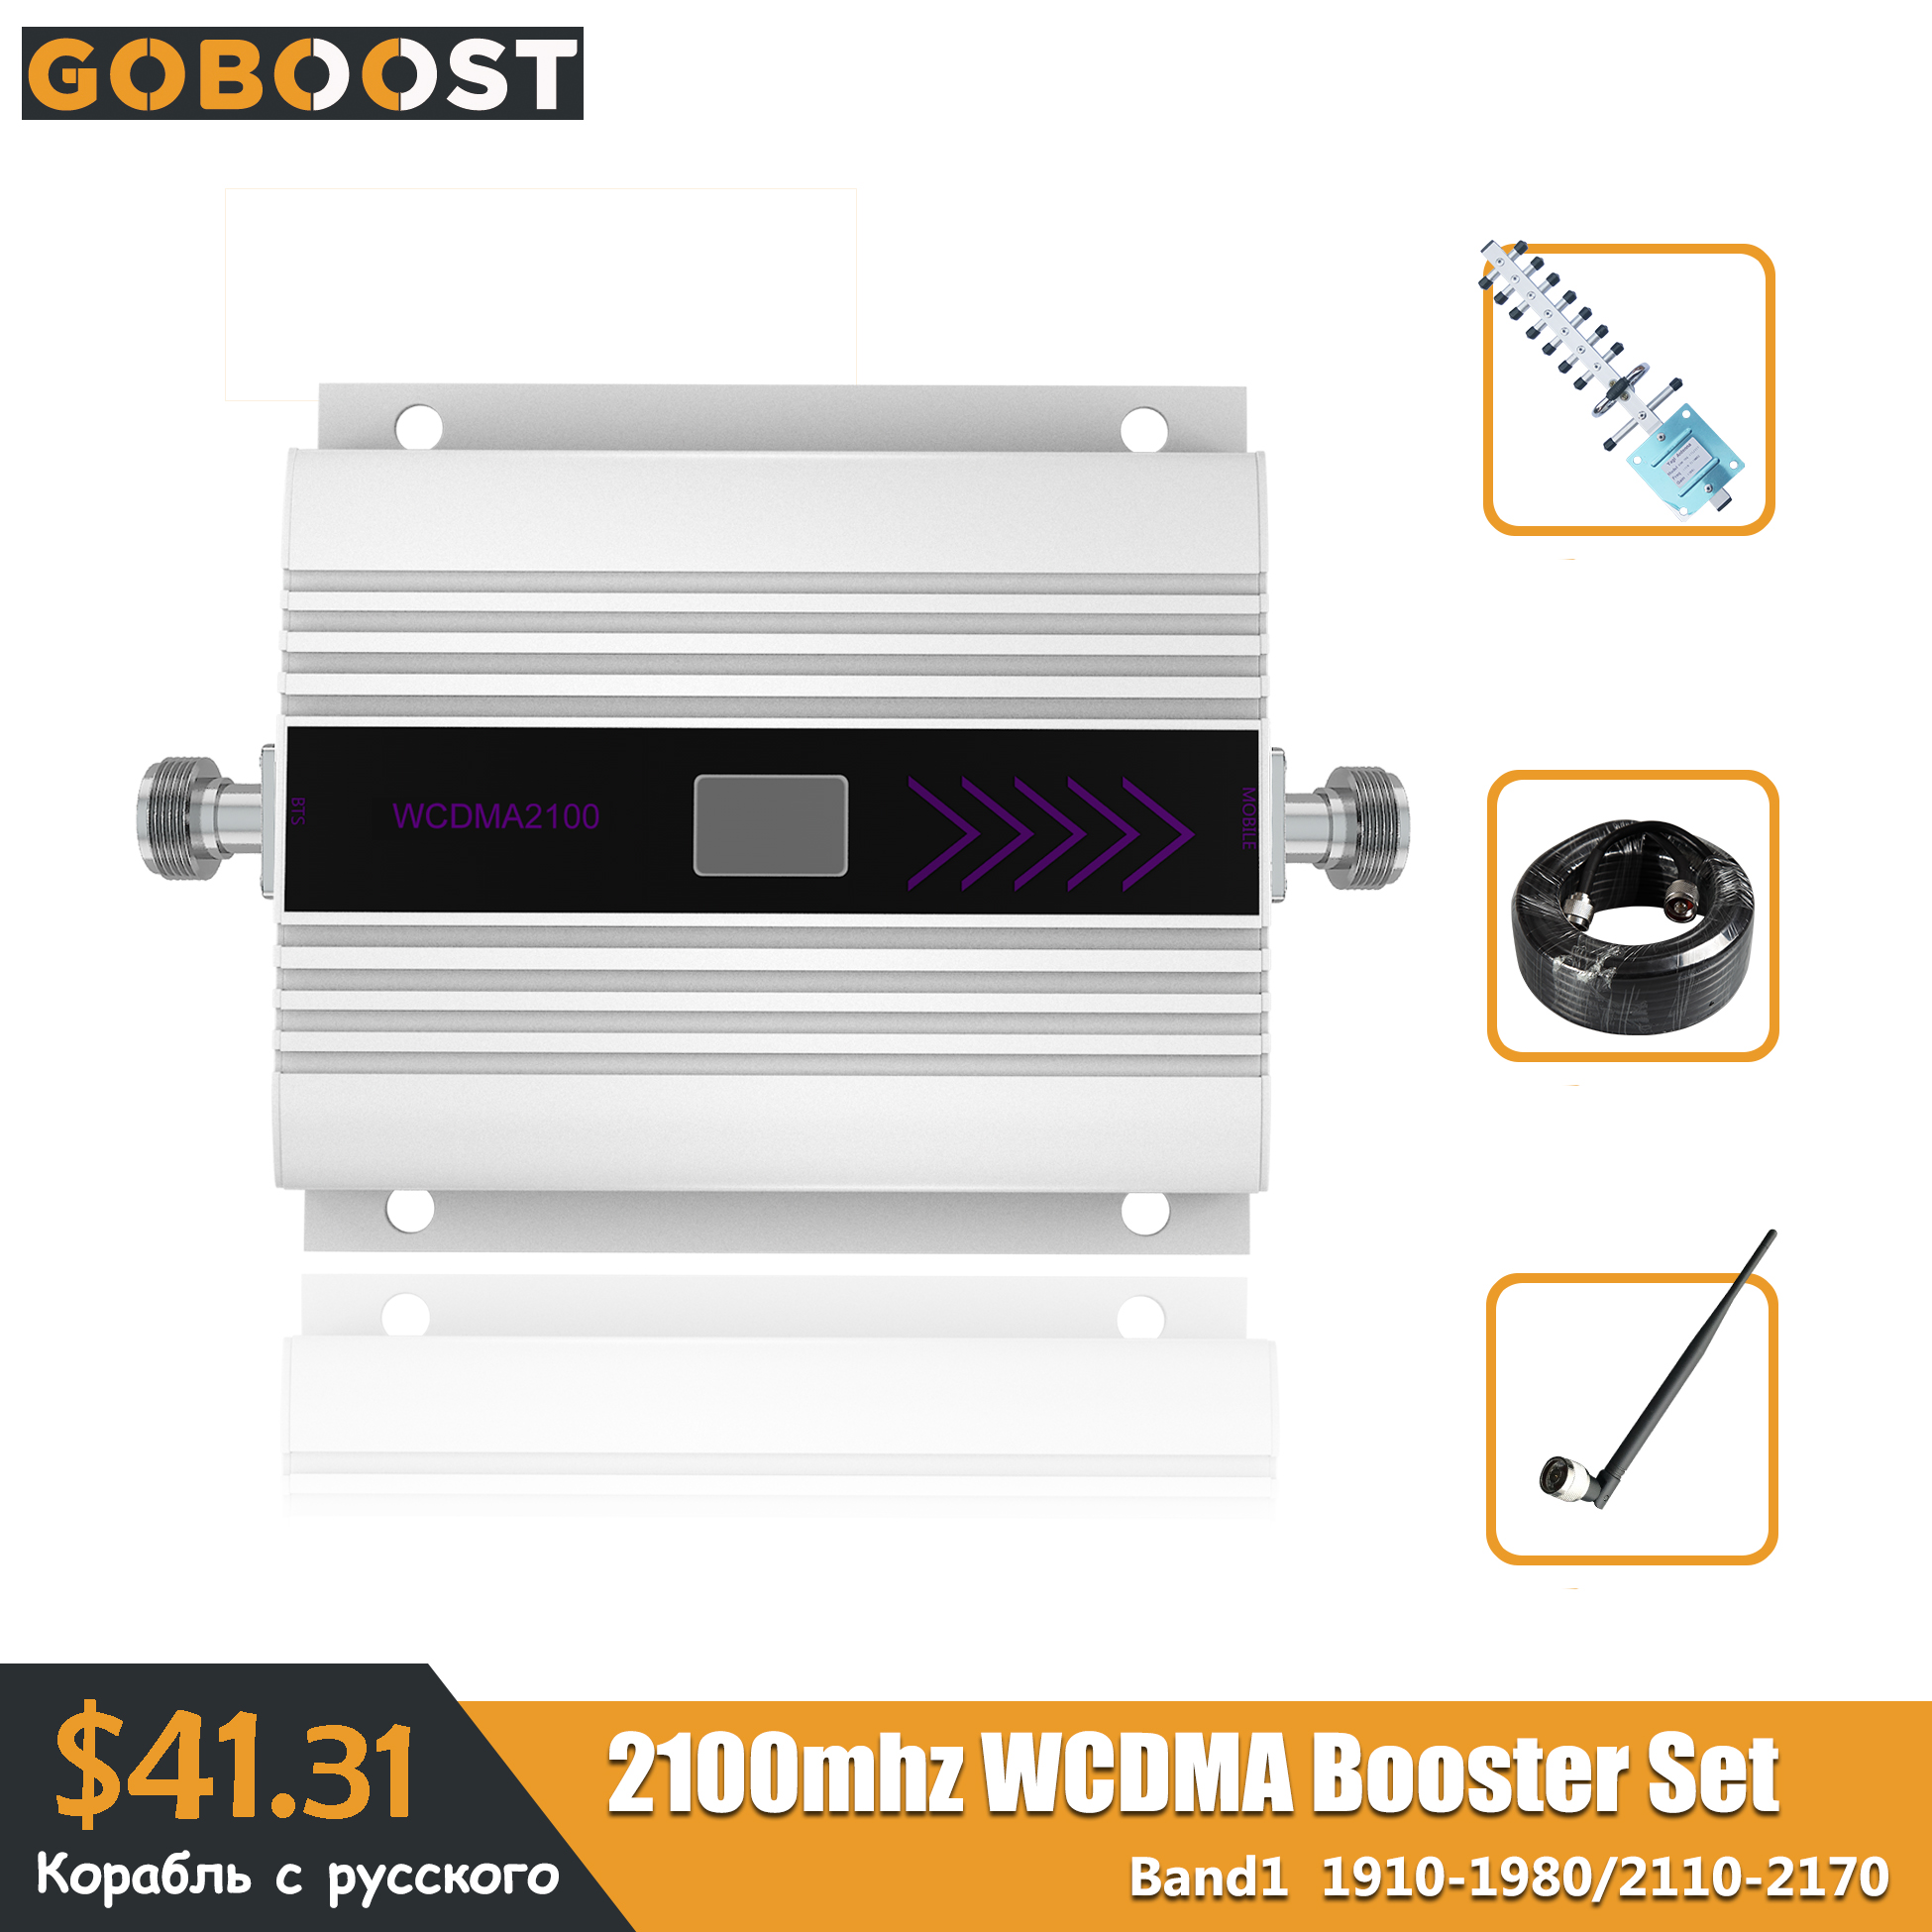 WCDMA 3G Mini Size Mobile Phone Signal Cellular Booster Repeater Amplifier 2100mhz Band1 UMTS HSPA Yagi Whip Antenna LCD Display